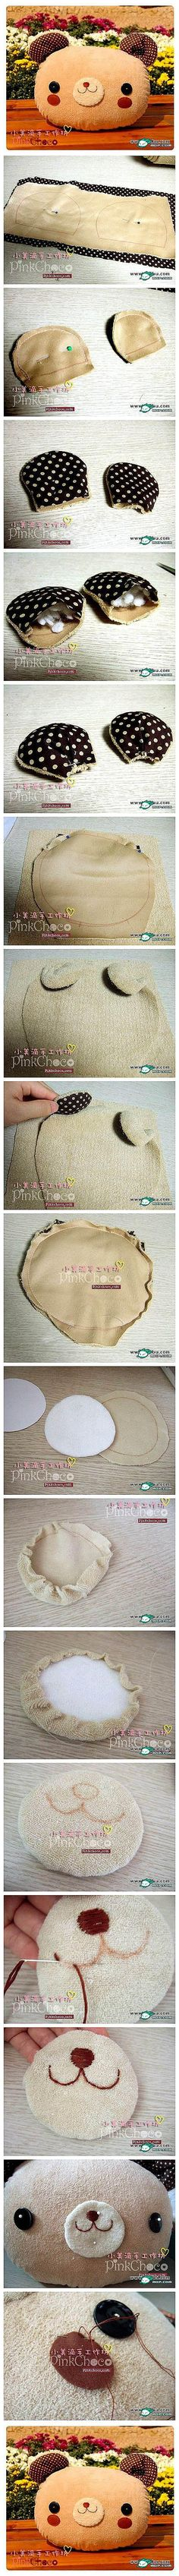 How to make a Teddy Bear Pillow - Wouldn't be very difficult to adjust the shape of the ears or face, etc to make other animals